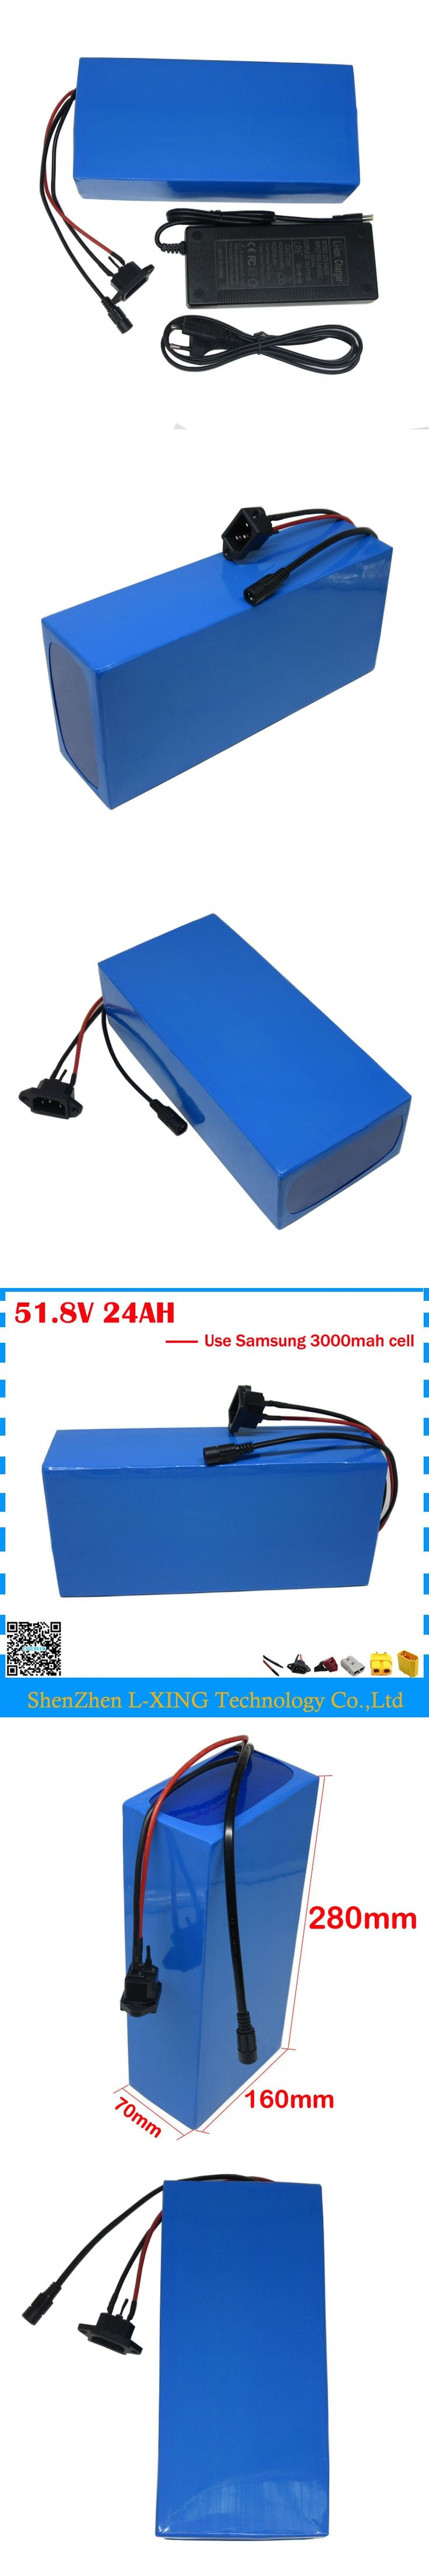 Free customs duty 51.8V 24AH Electric bicycle battery 52V 24AH scooter battery 52V lithium battery use Samsung 3000mah cell